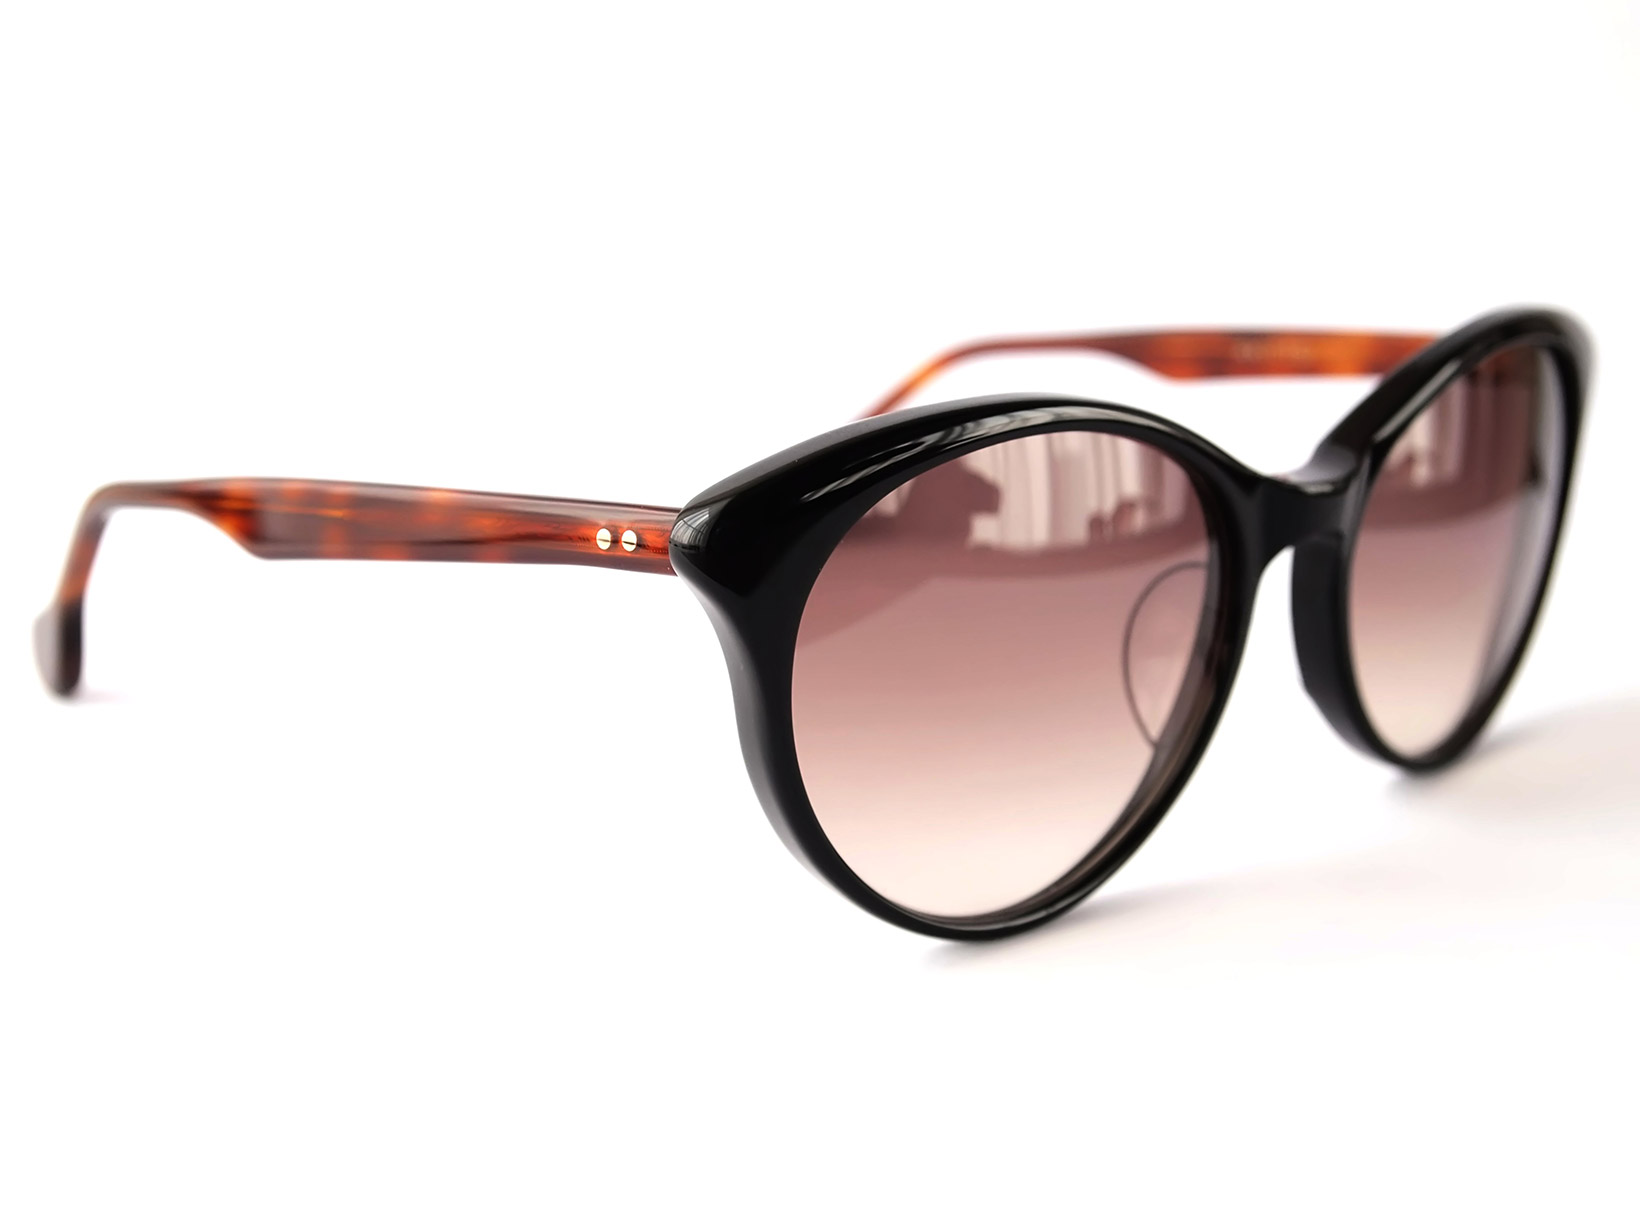 AKITTO 2016-2nd sg1 color BK size:54□18 material: acetate price:29,600-(+tax)